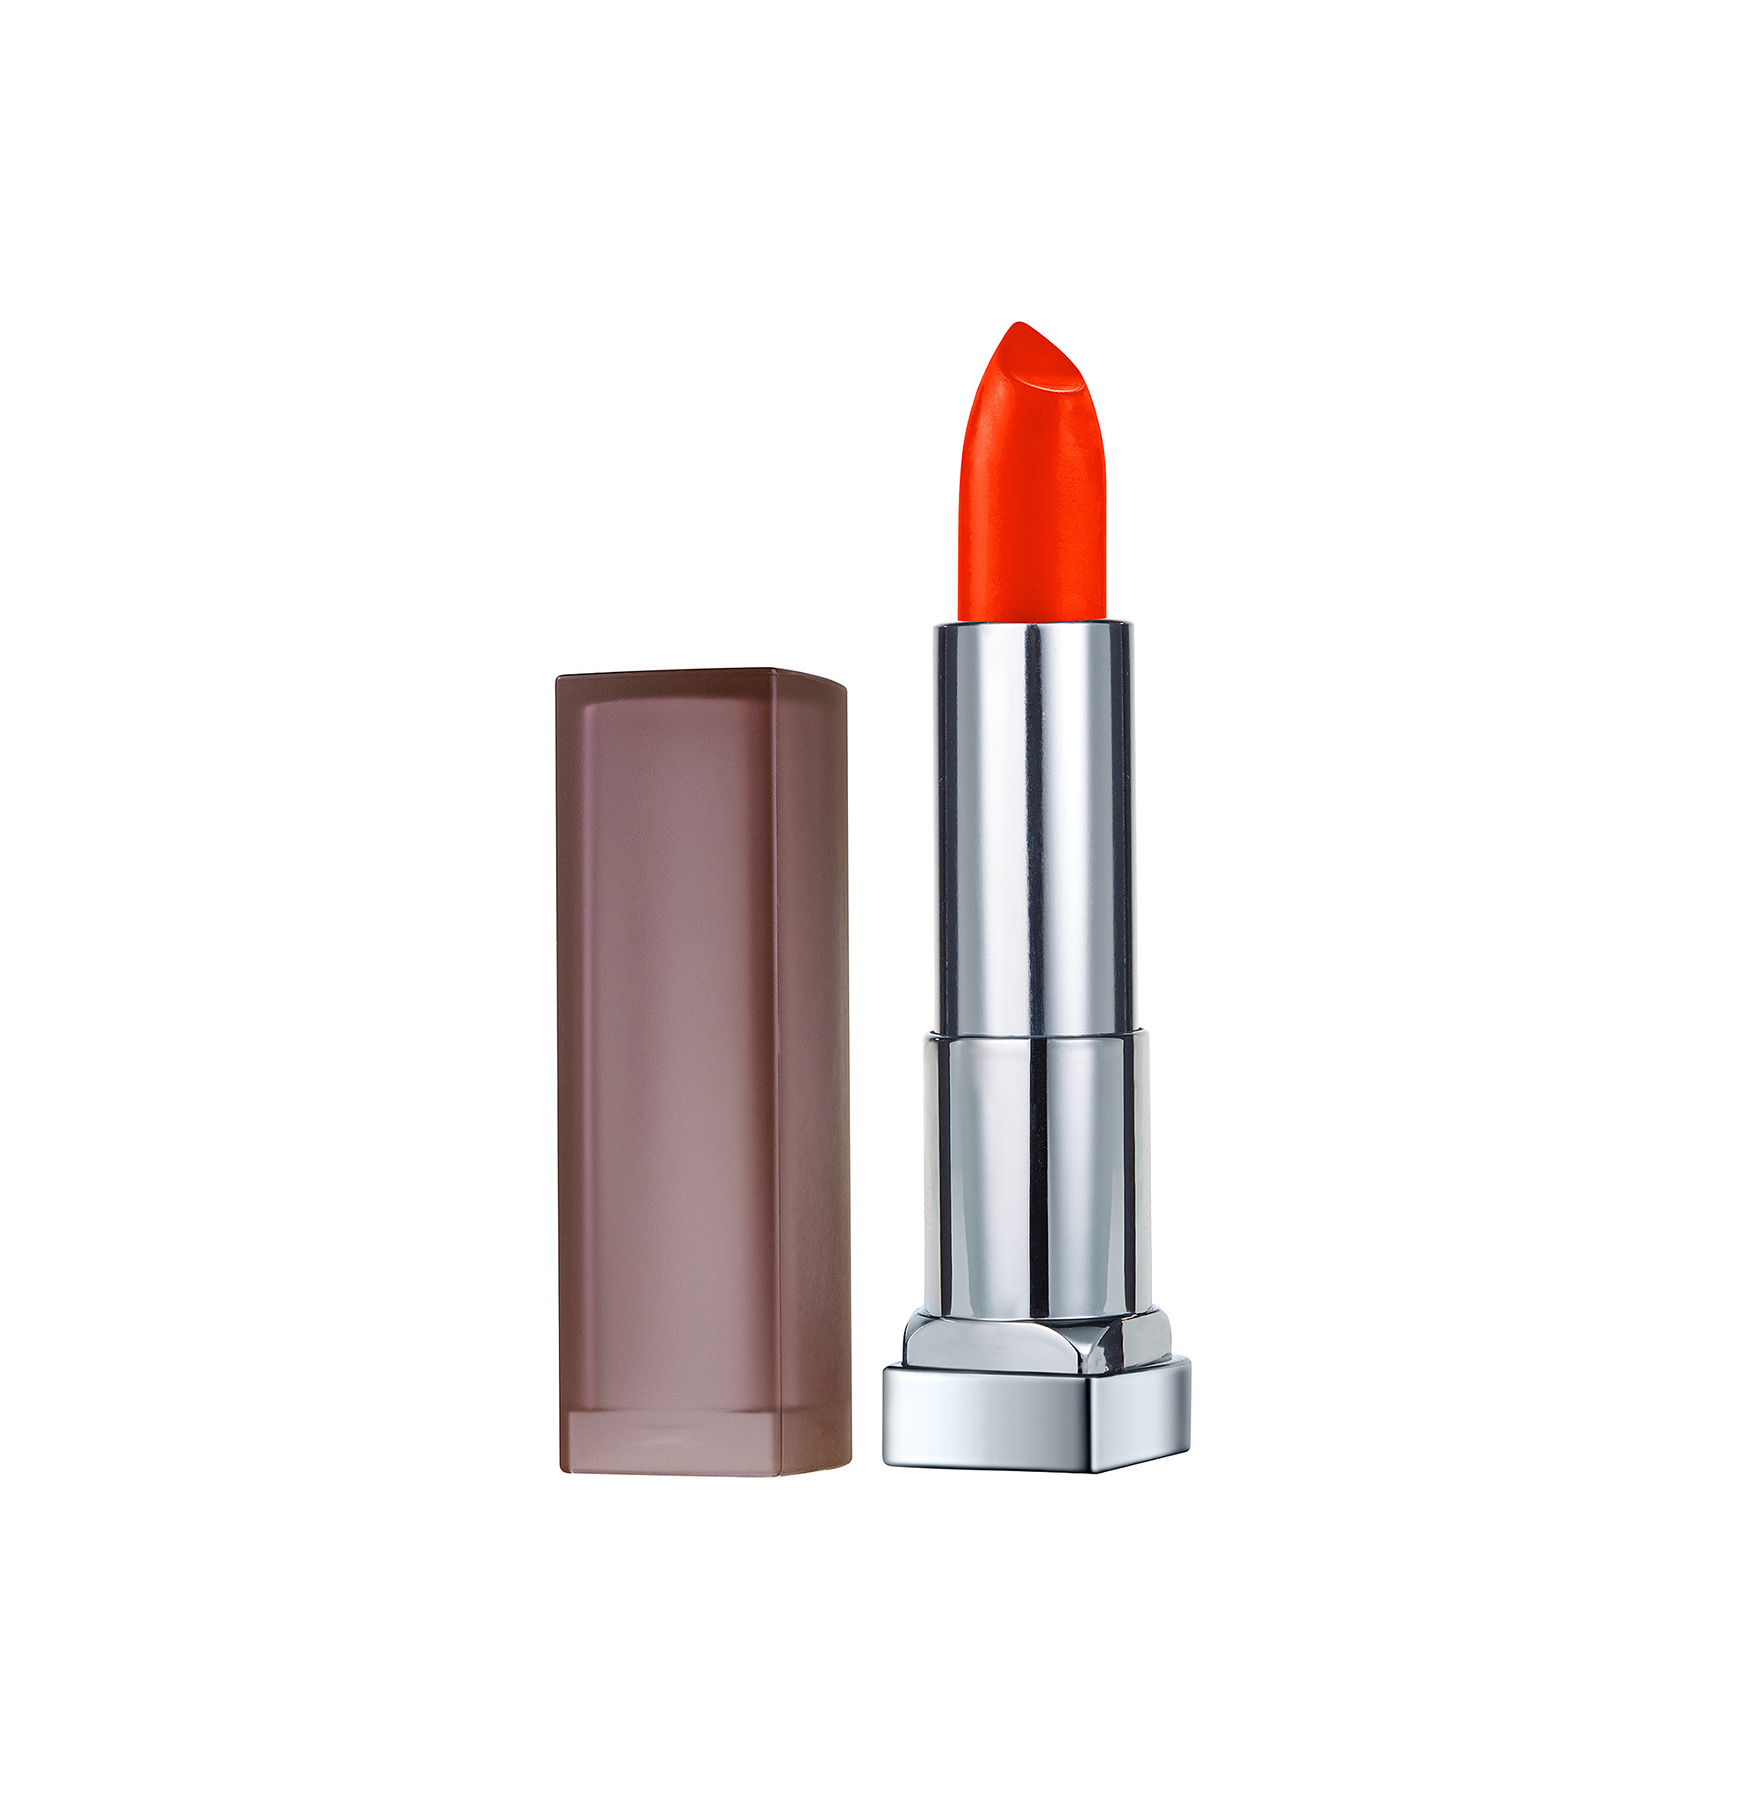 Maybelline New York Color Sensational Creamy Mattes in Craving Coral